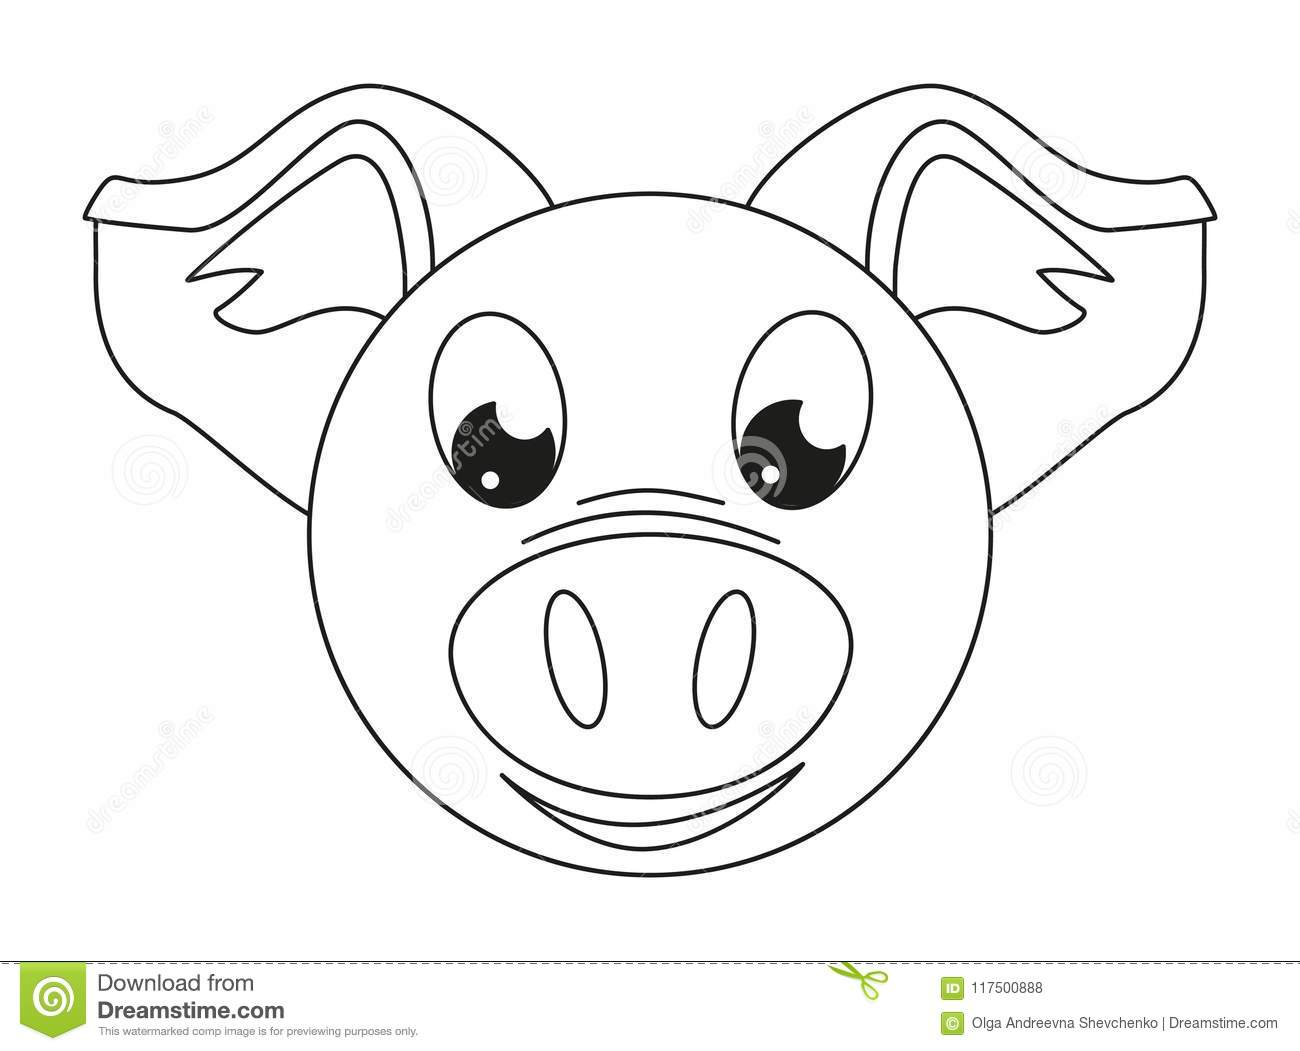 Line Art Black And White Pig Face Stock Illustration - Illustration ...